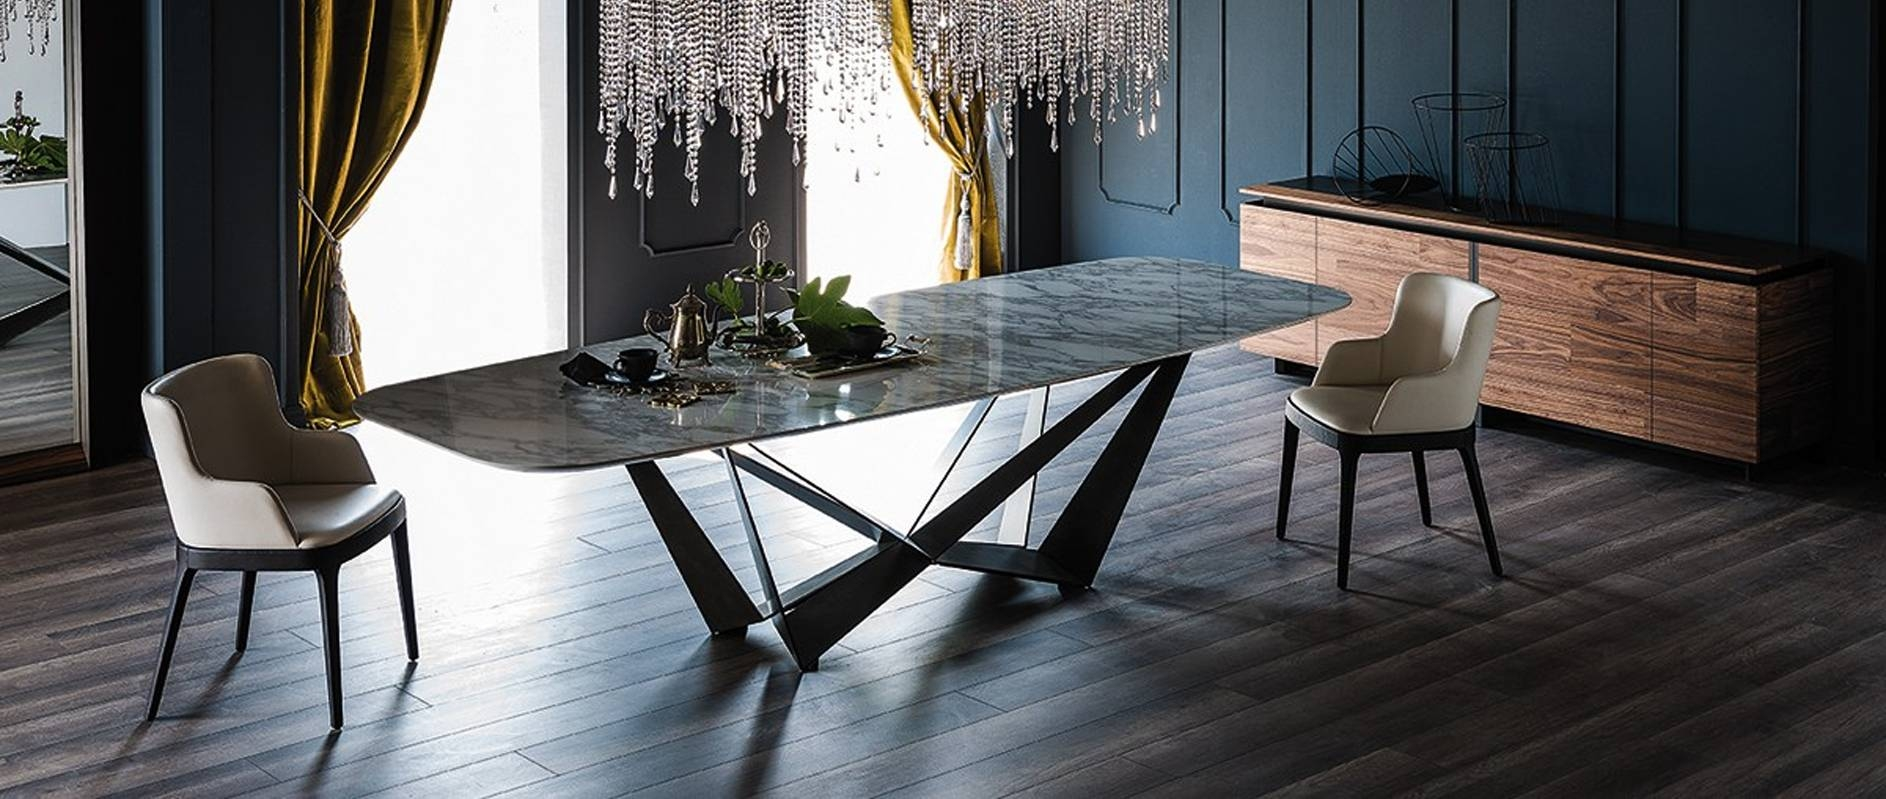 Modern Dining Room Furniture – Modern Dining Tables, Dining Chairs Within Newest Dining Room Table Chairs And Sideboards (View 12 of 15)